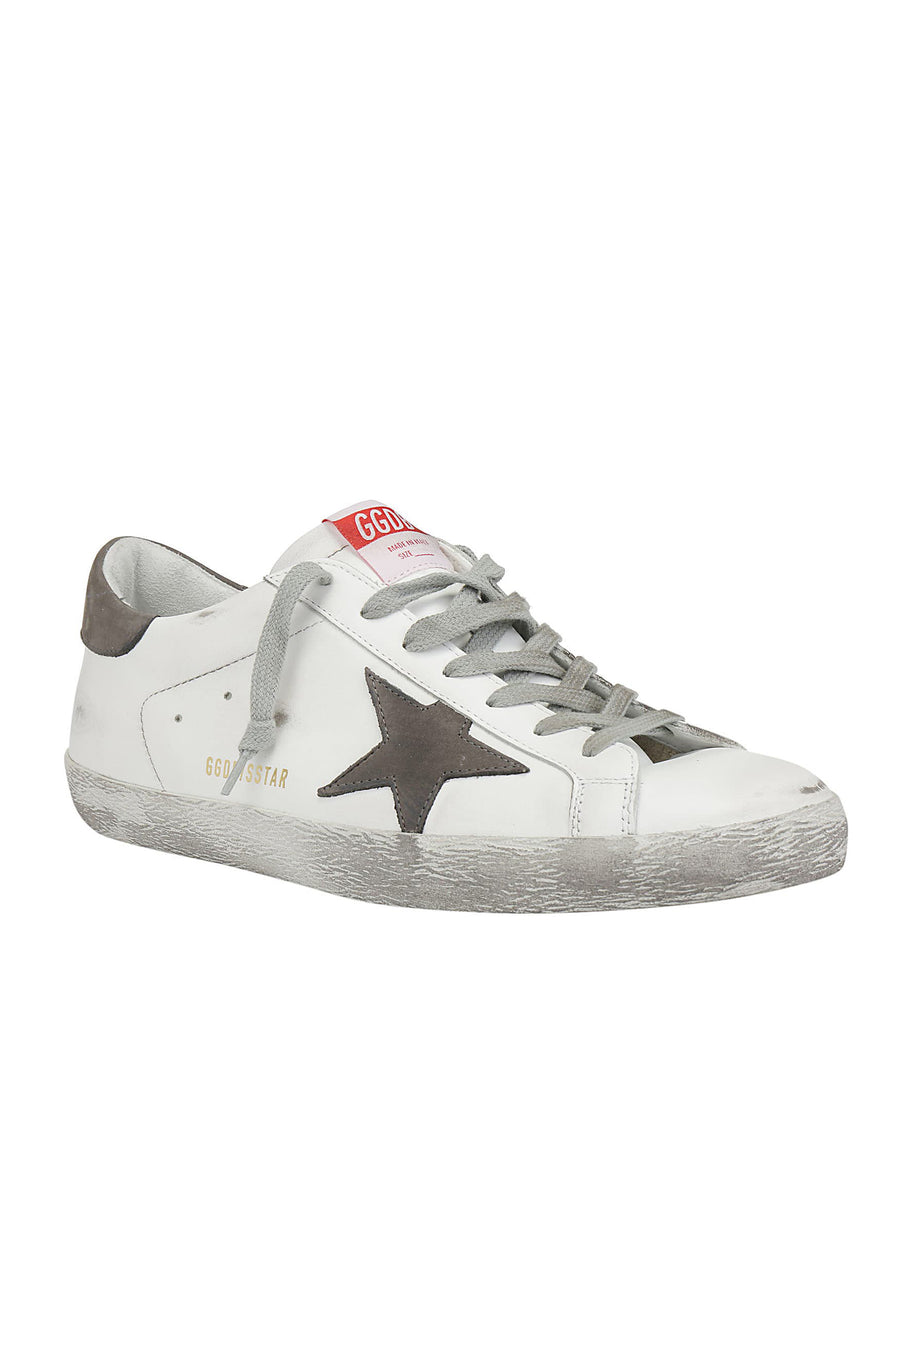 Superstar - Grey W/ Nubuck Star - Pavilion